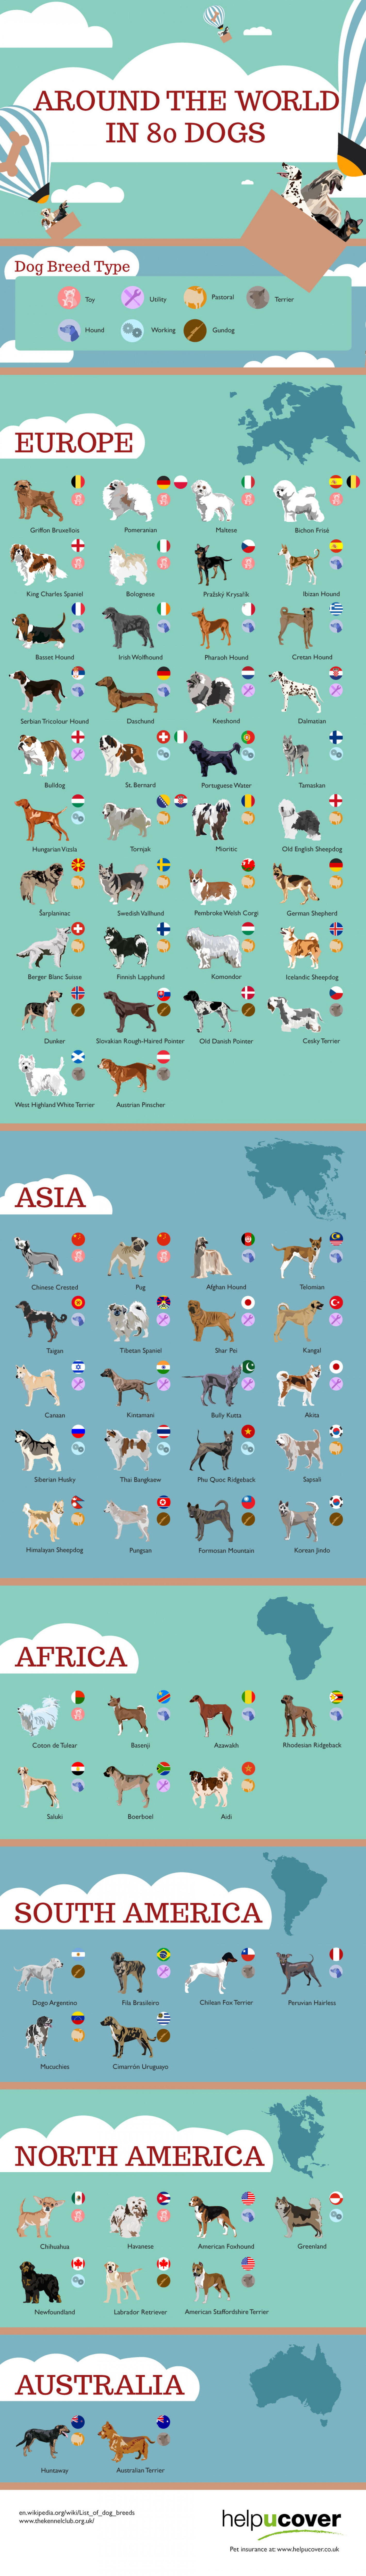 Around the World in 80 Dogs Infographic